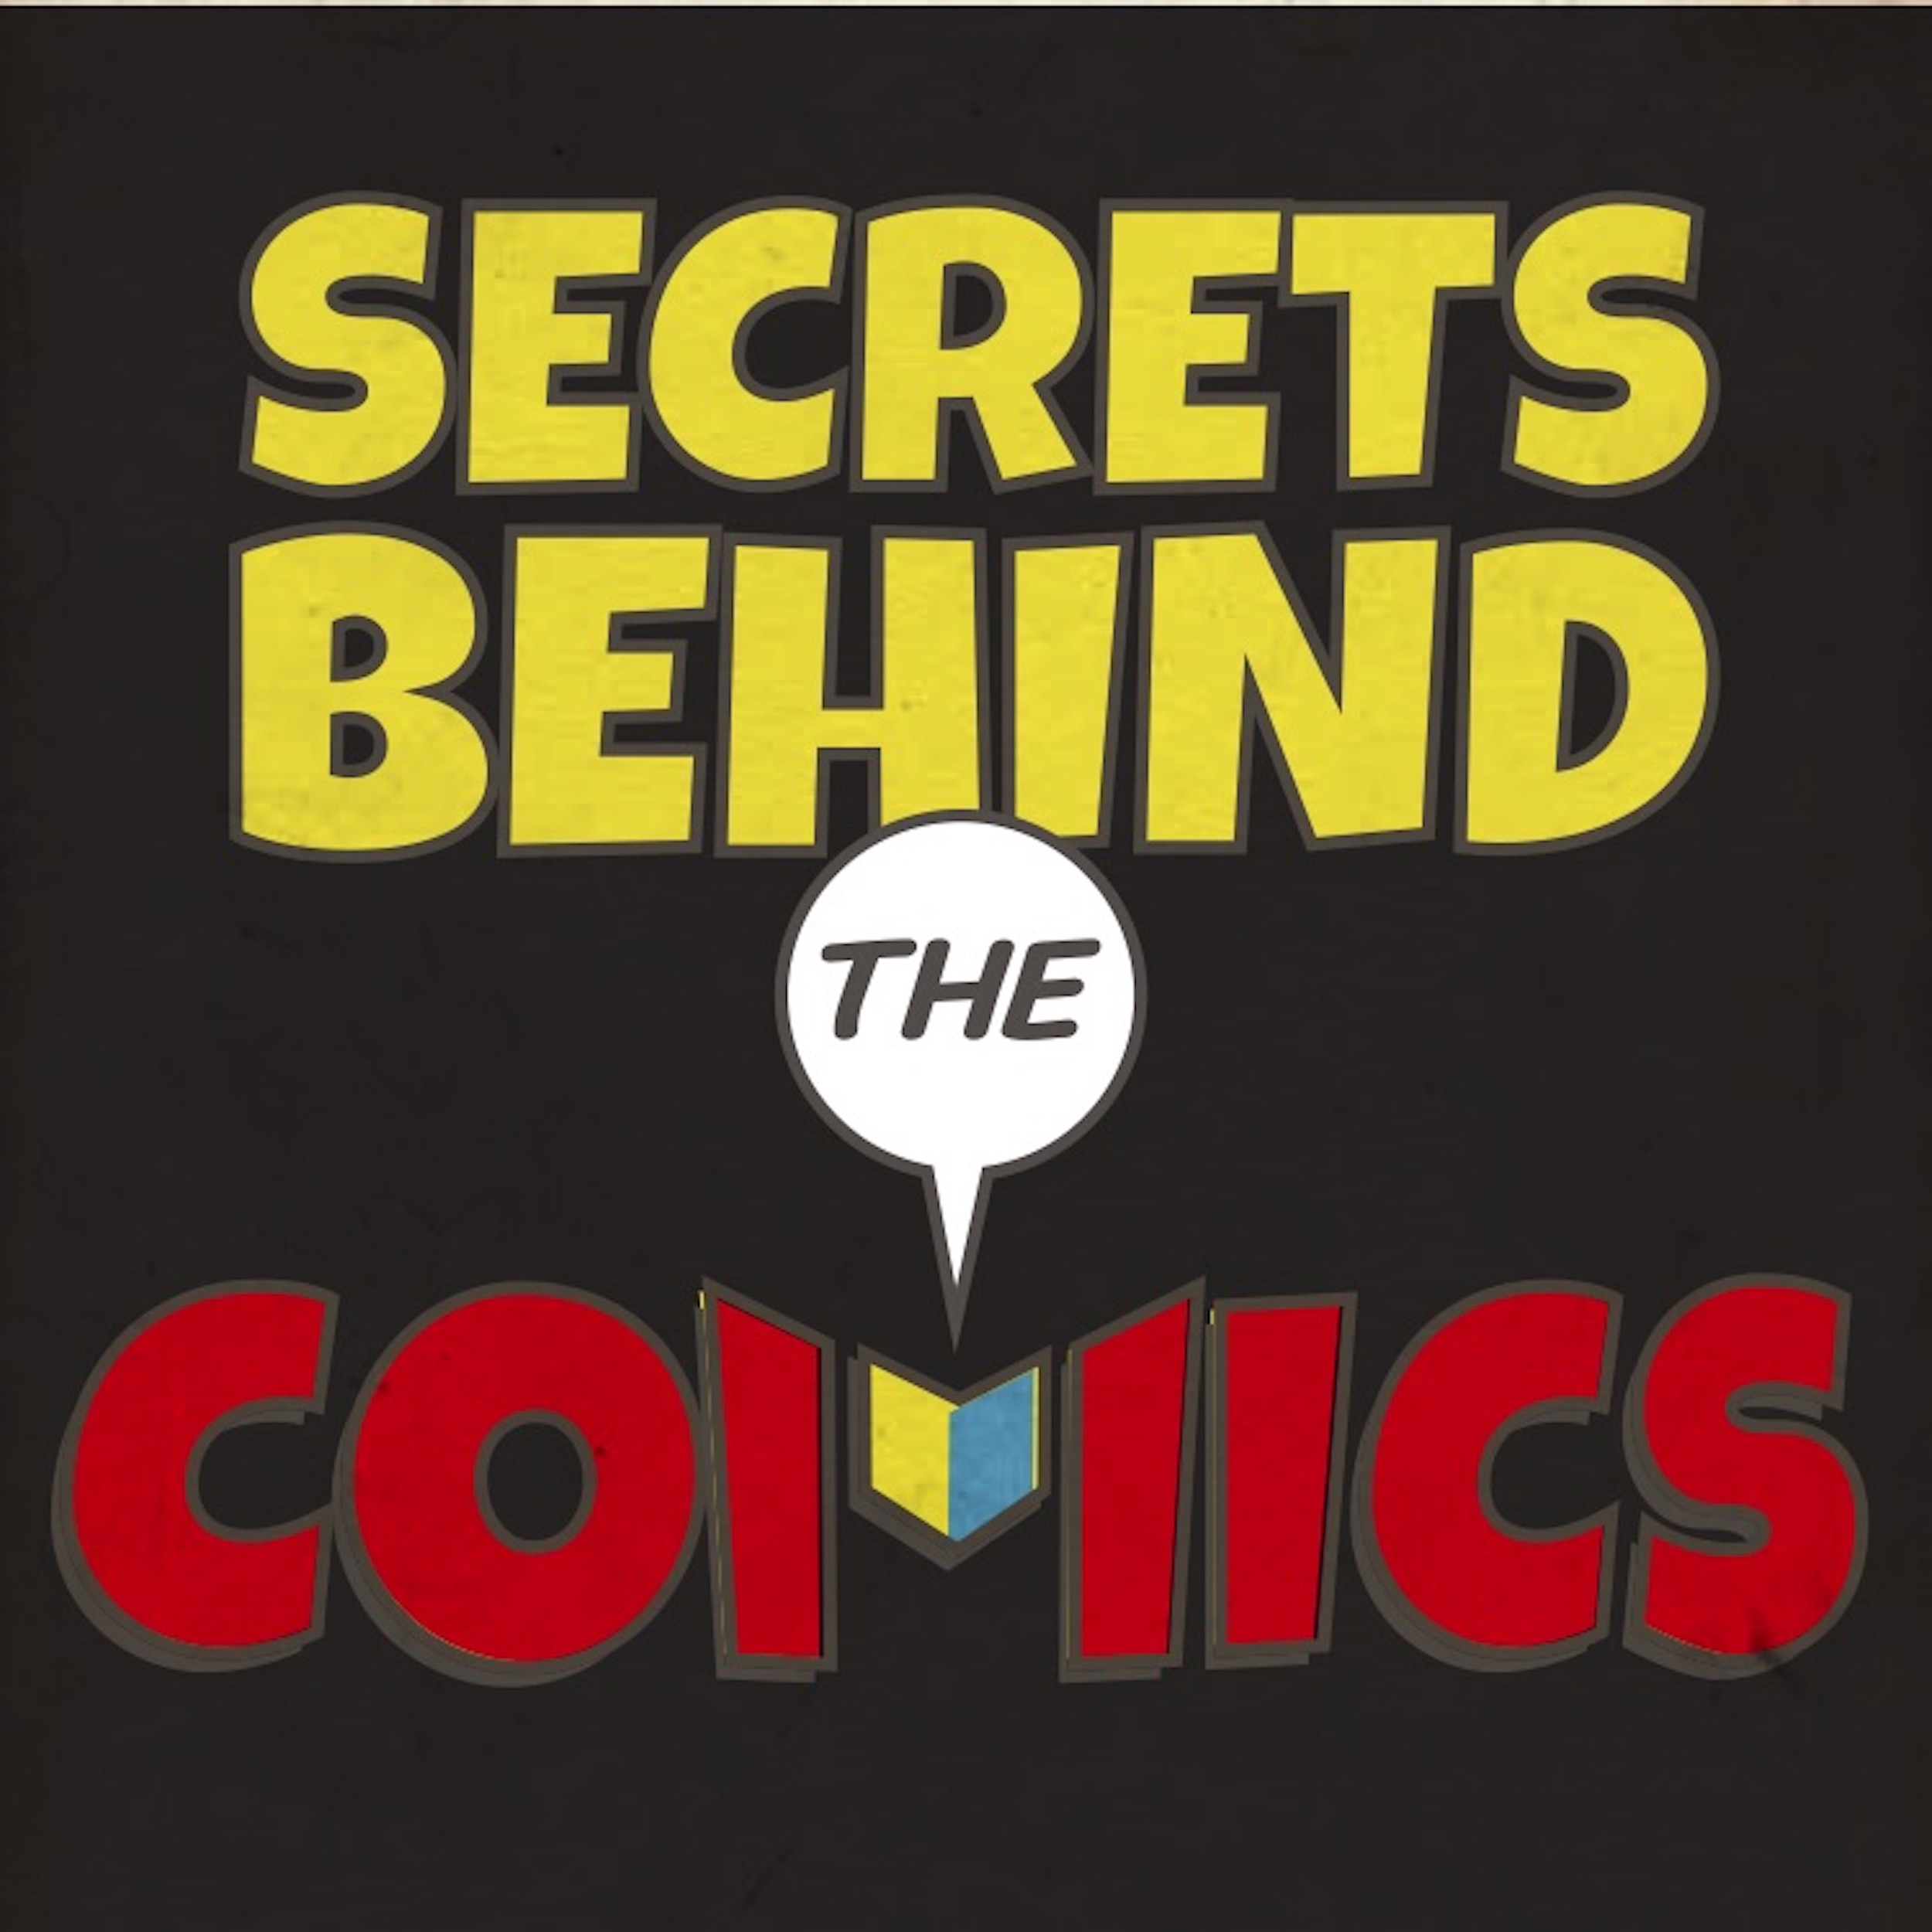 Welcome to Secrets Behind the Comics. - The podcast that gives you a deep dive behind the making of comics by talking to some of the most interesting, important, and influential creators in the business -with stories both unique, and in many cases,little-known.